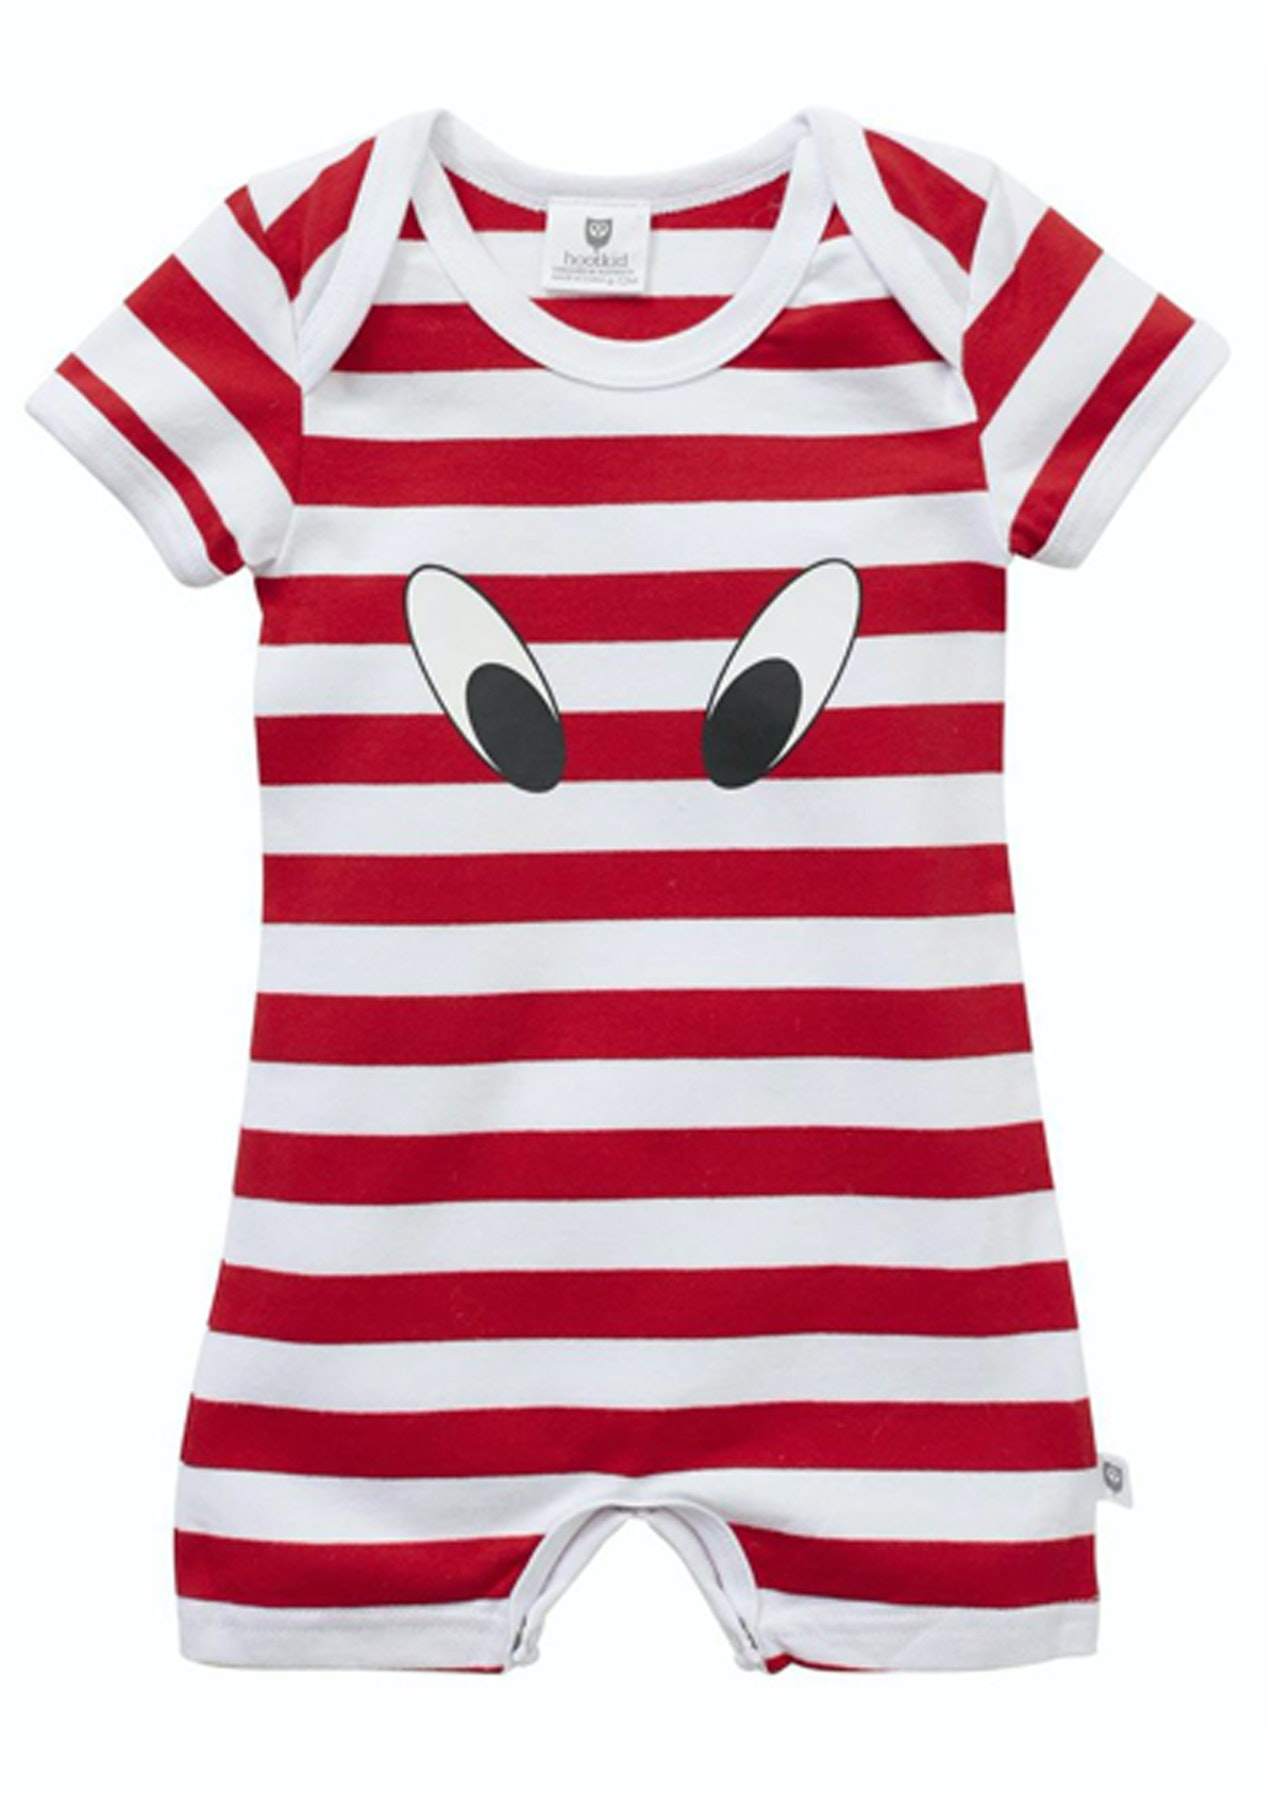 ed28cb931 Hootkid - Look Here Romper - Red White Stripe - Hootkid Everything ...